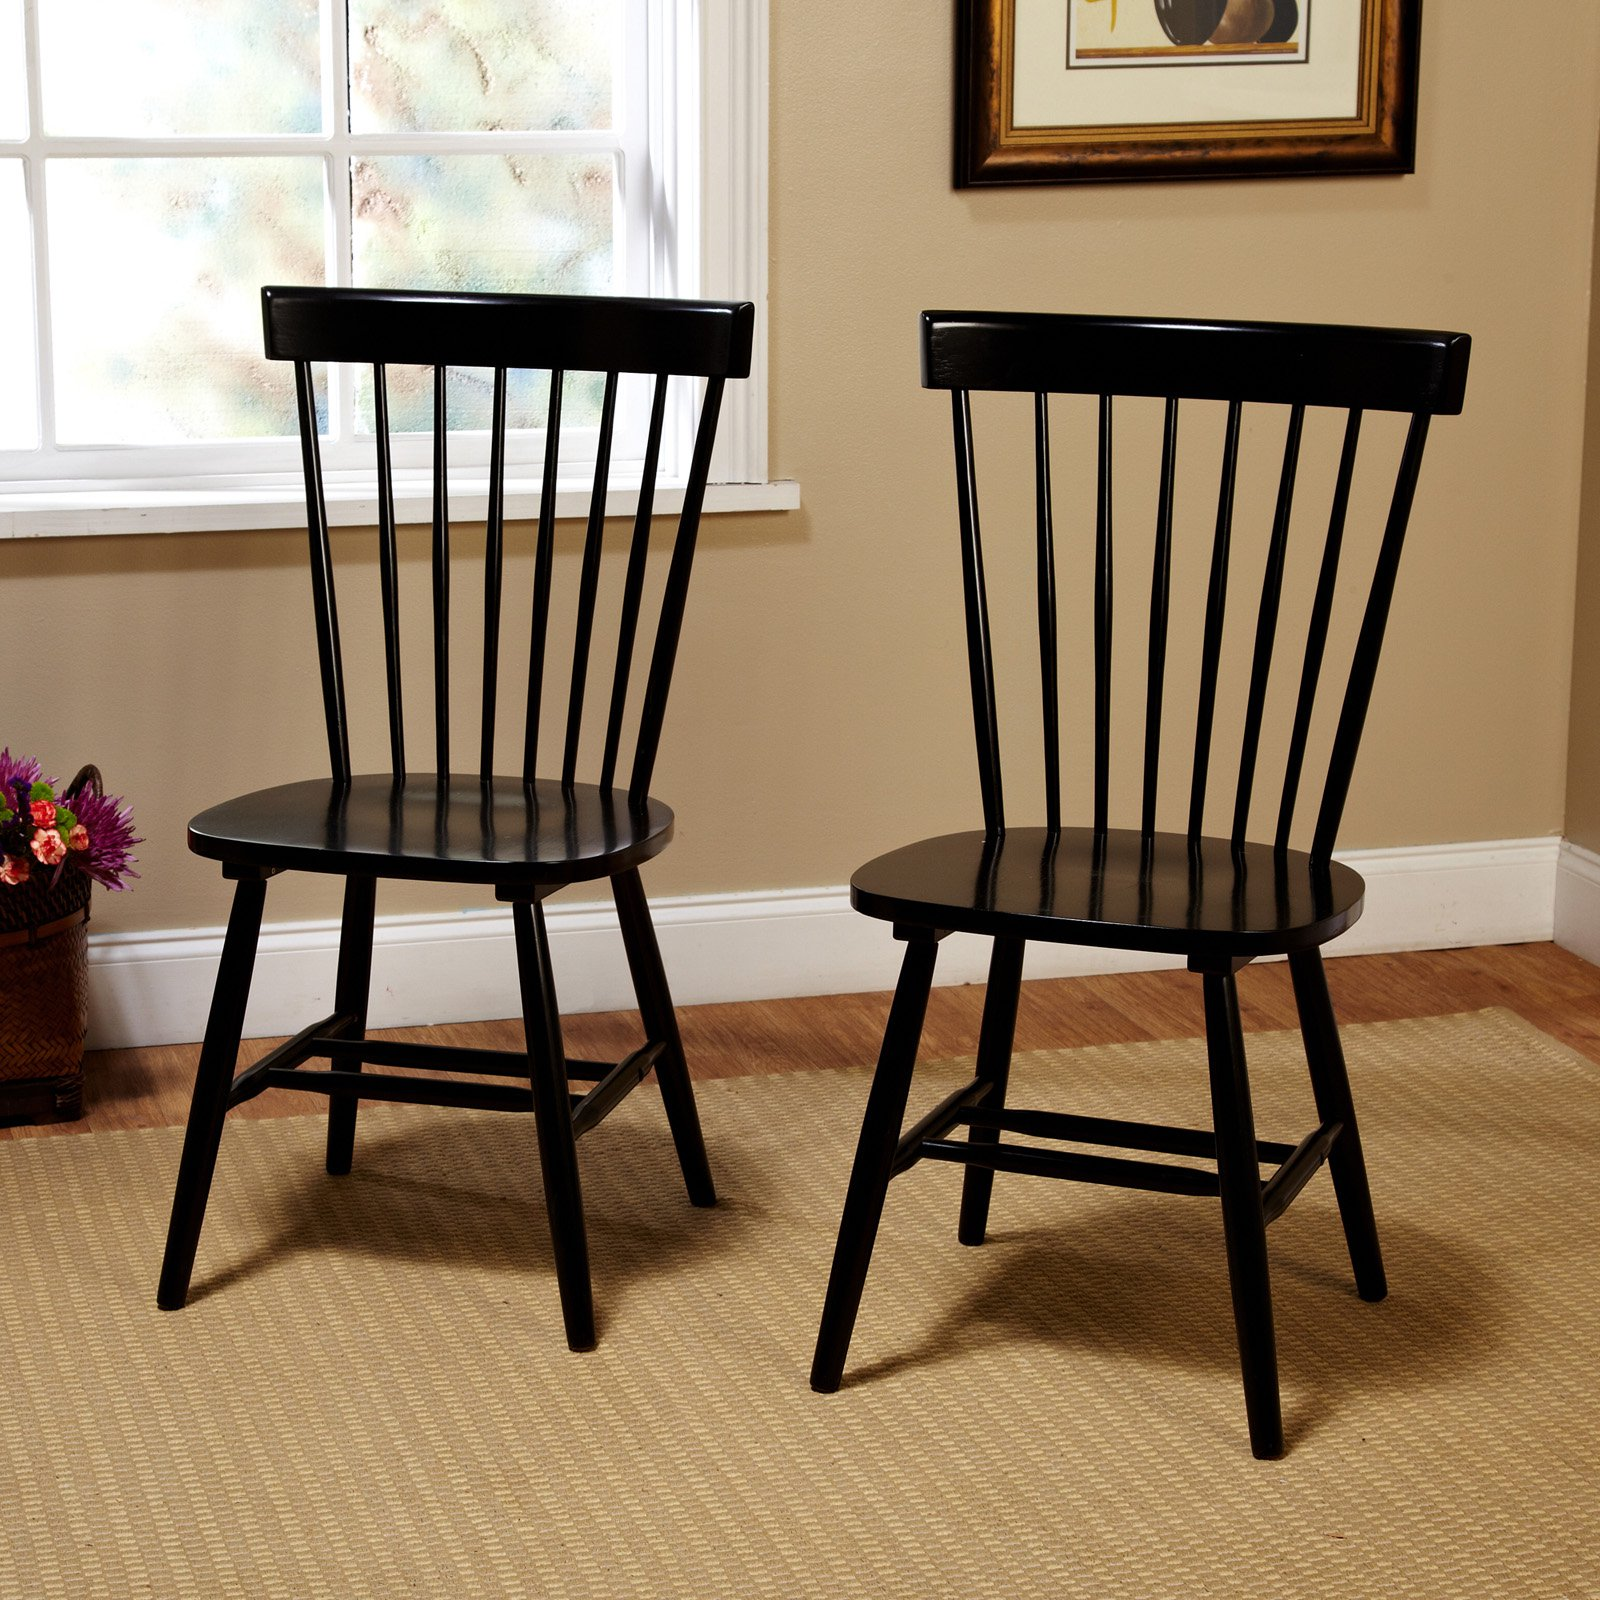 Target Dining Room Furniture: Target Marketing Systems Venice Side Chair